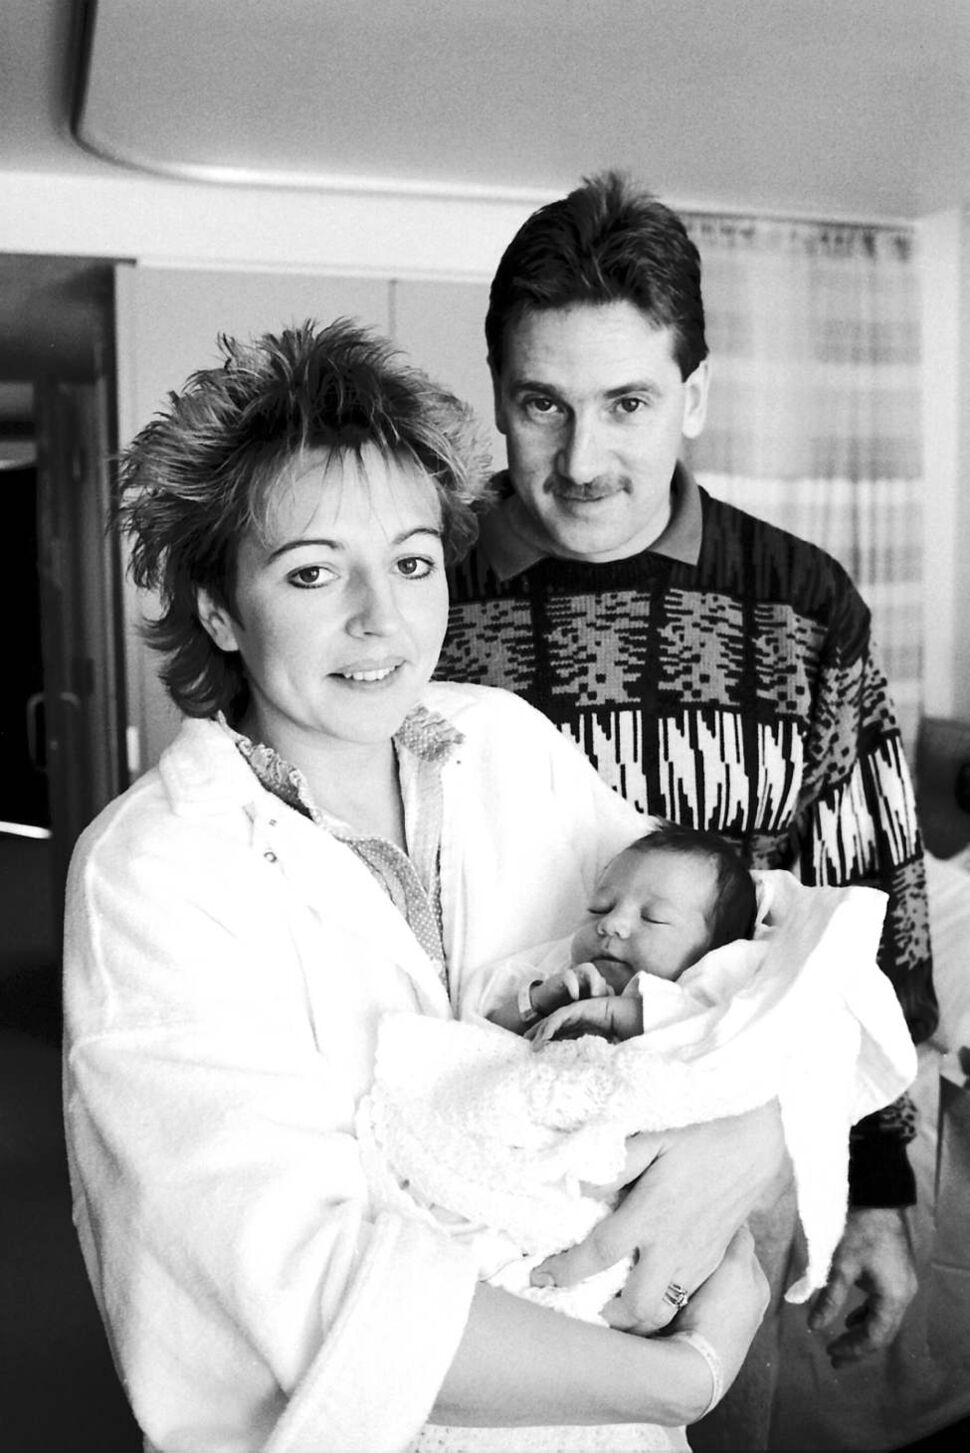 Melissa Fay Hillman, Winnipeg's first baby of the new year (1988) is shown off by her proud parents, Stan and Lila Hillman, at Victoria General Hospital. Melissa, born when 1988 was only two minutes old, weighed in at seven pounds, 15.5 ounces. (Ken Gigliotti / Winnipeg Free Press)